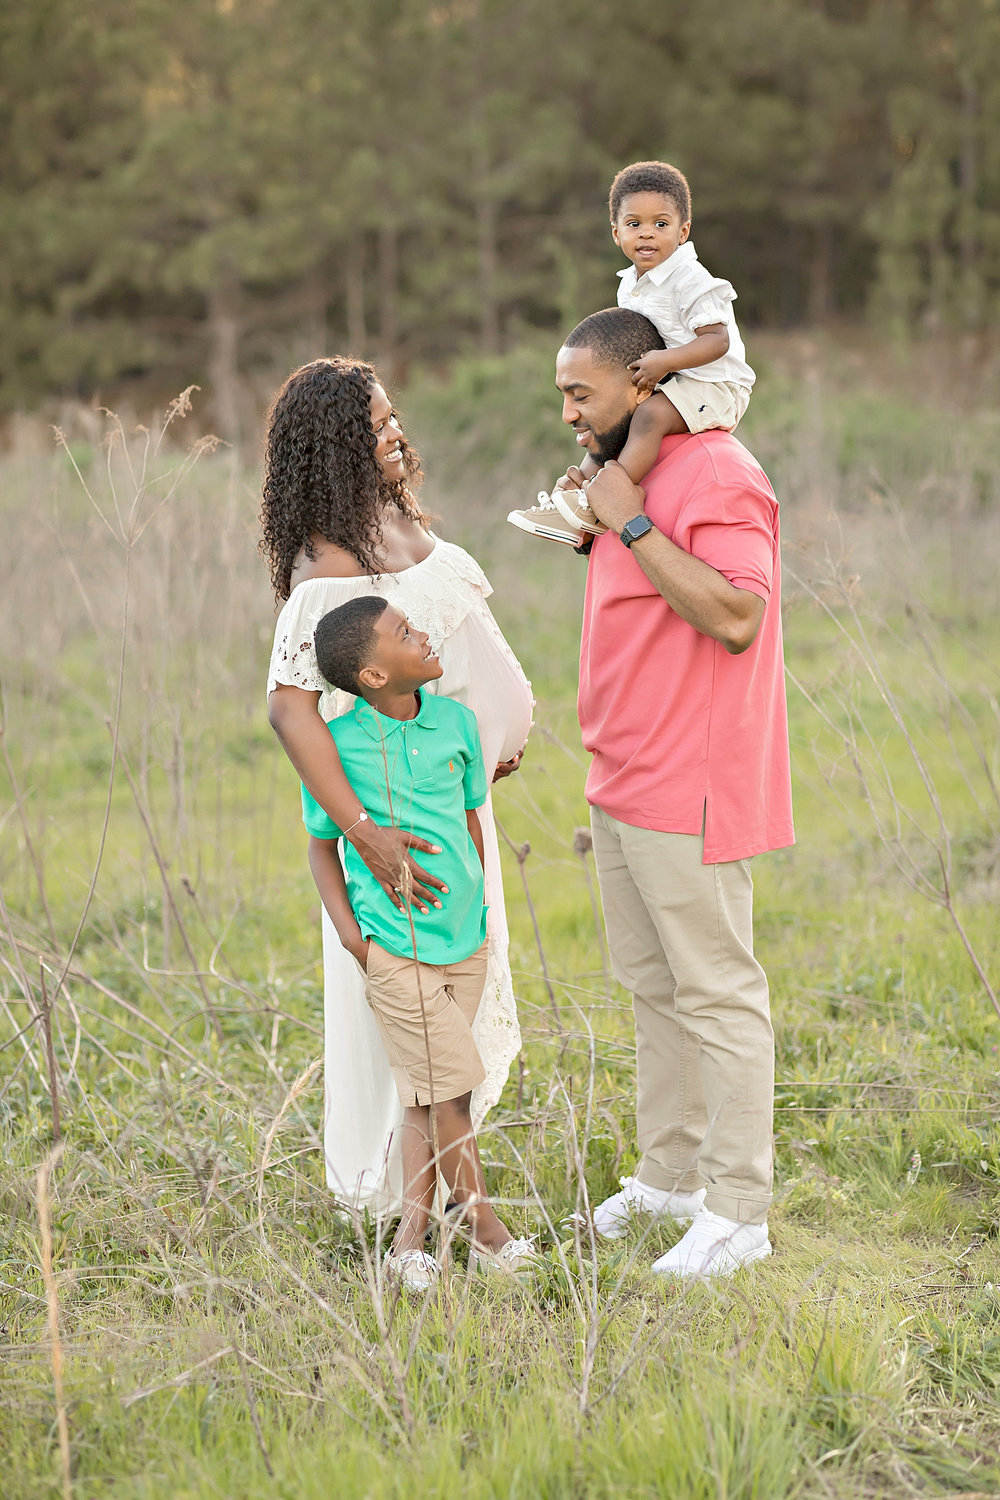 Image of an African American family of four, the mother has one arm around her 7 year old son and one hand on her belly, the dad has their toddler son on his shoulders.